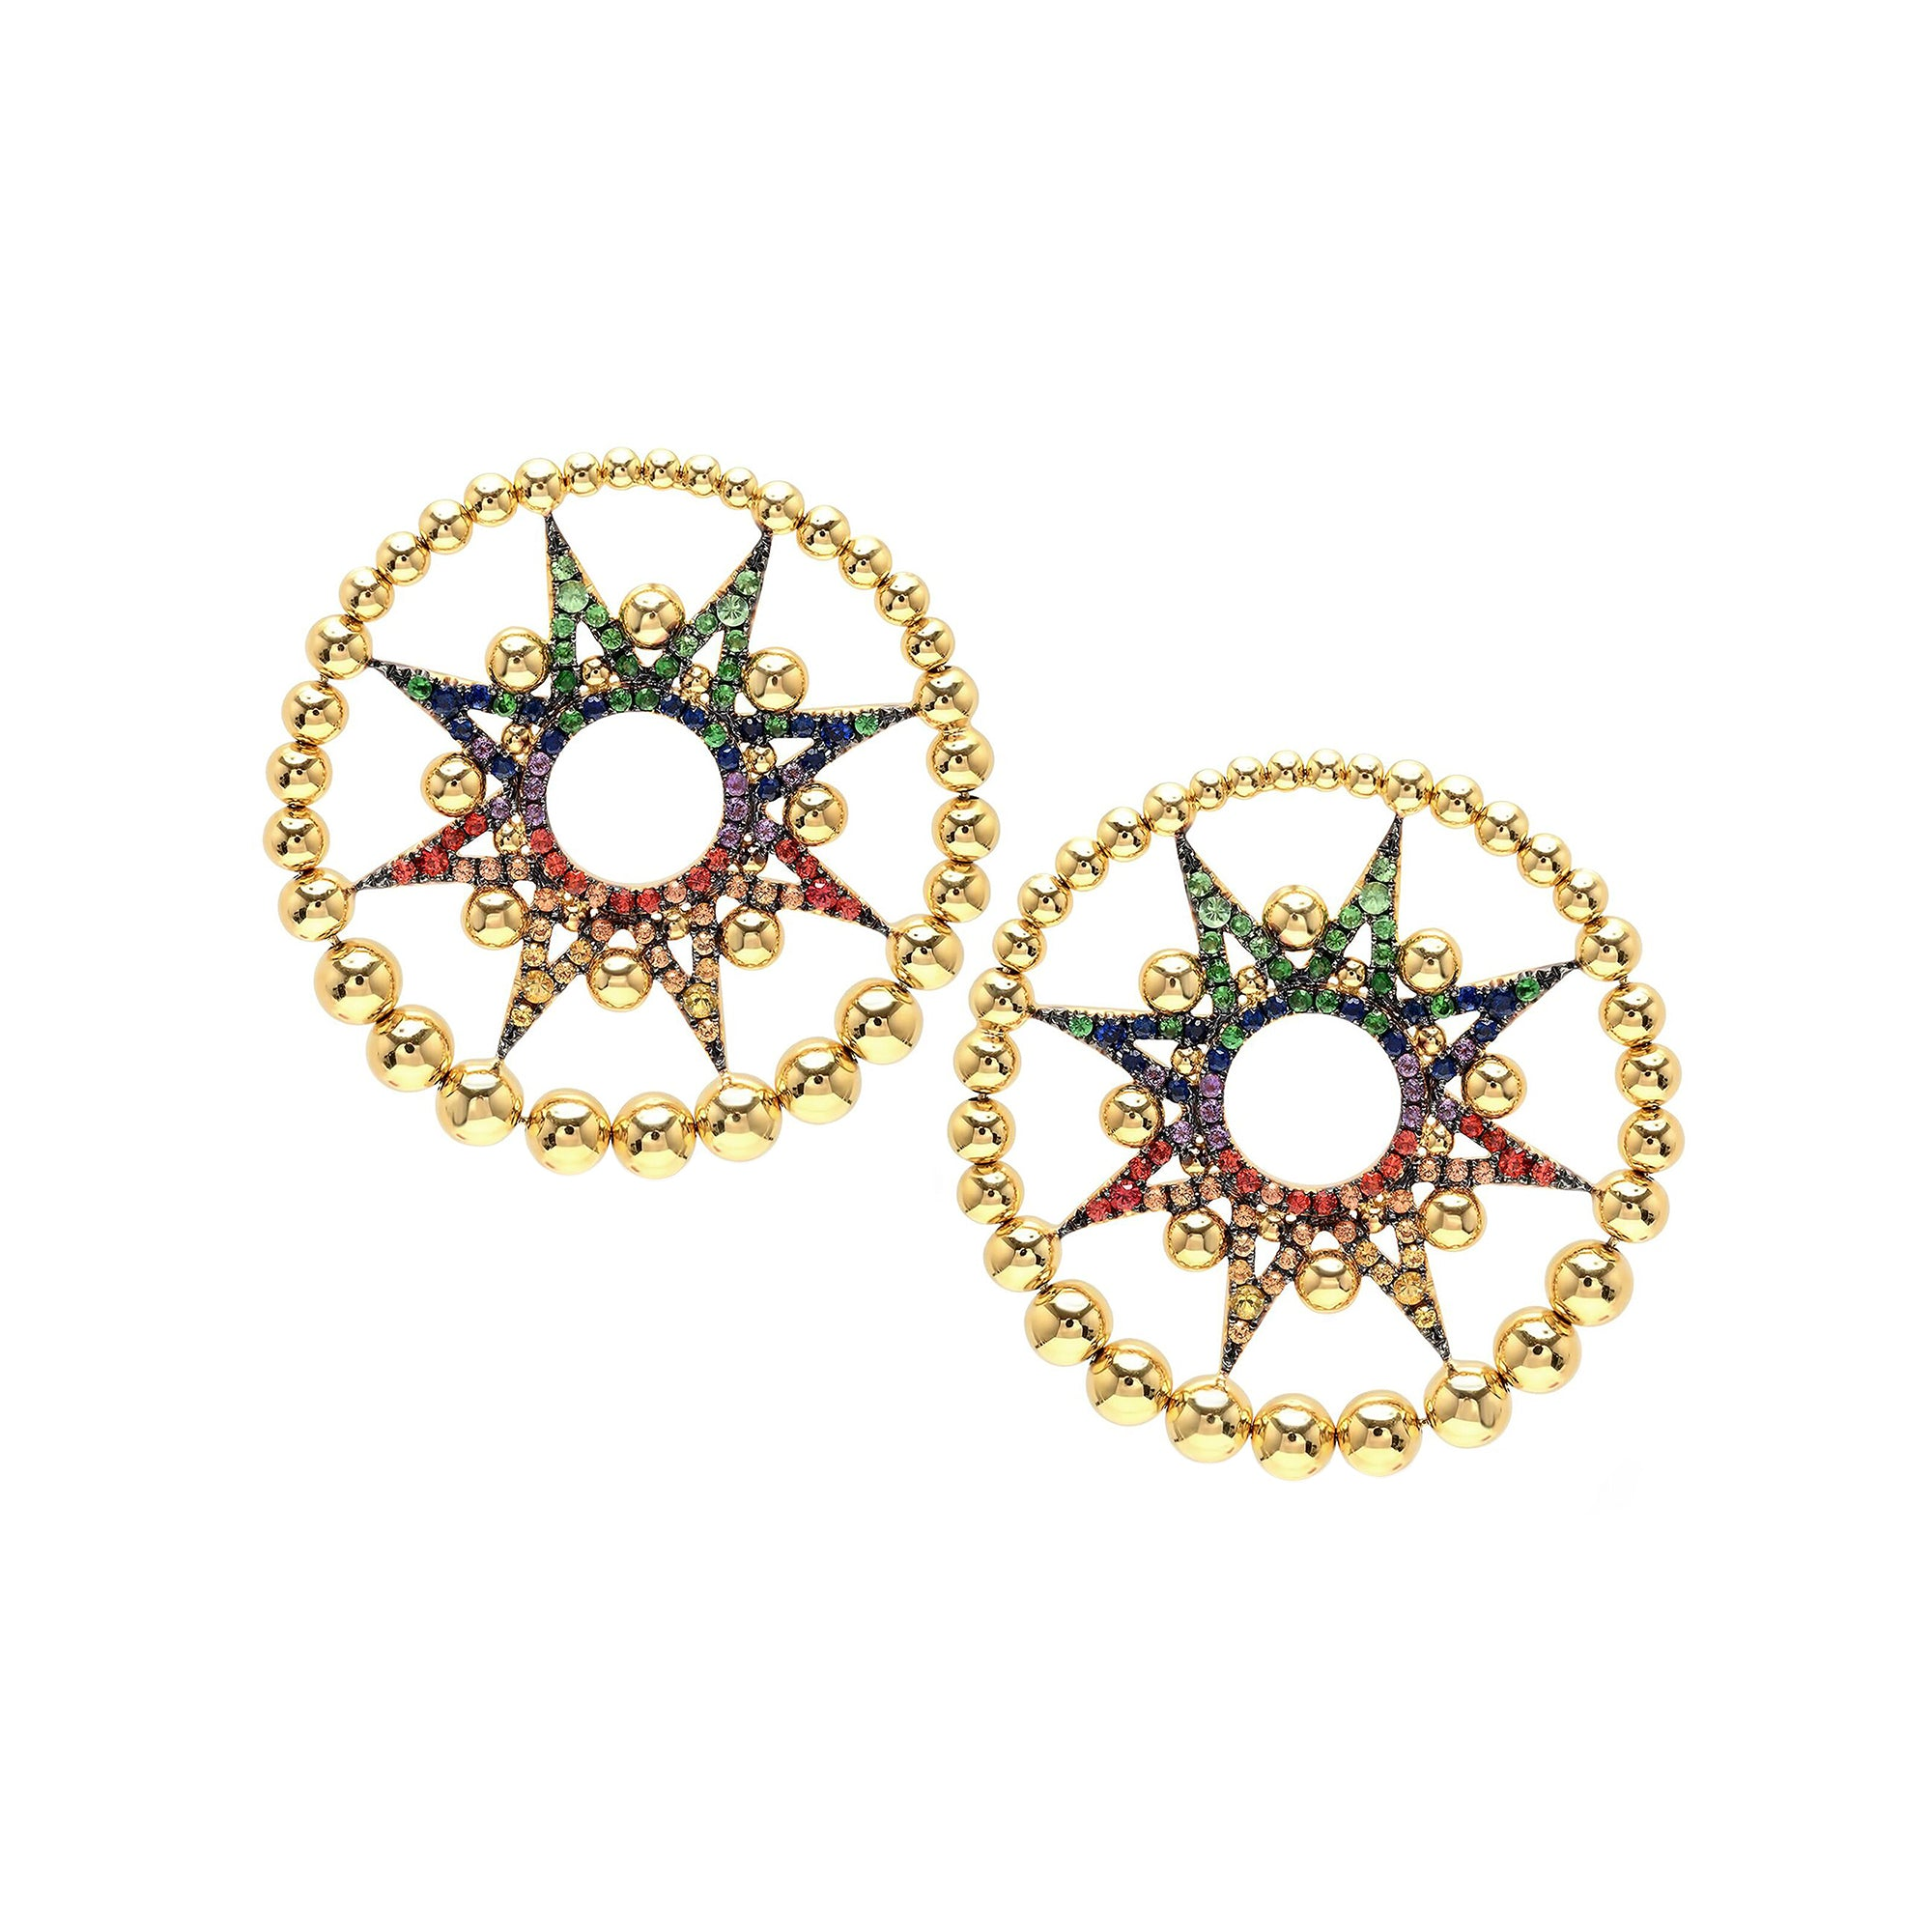 Multicolor Star Earrings by Colette for Broken English Jewelry